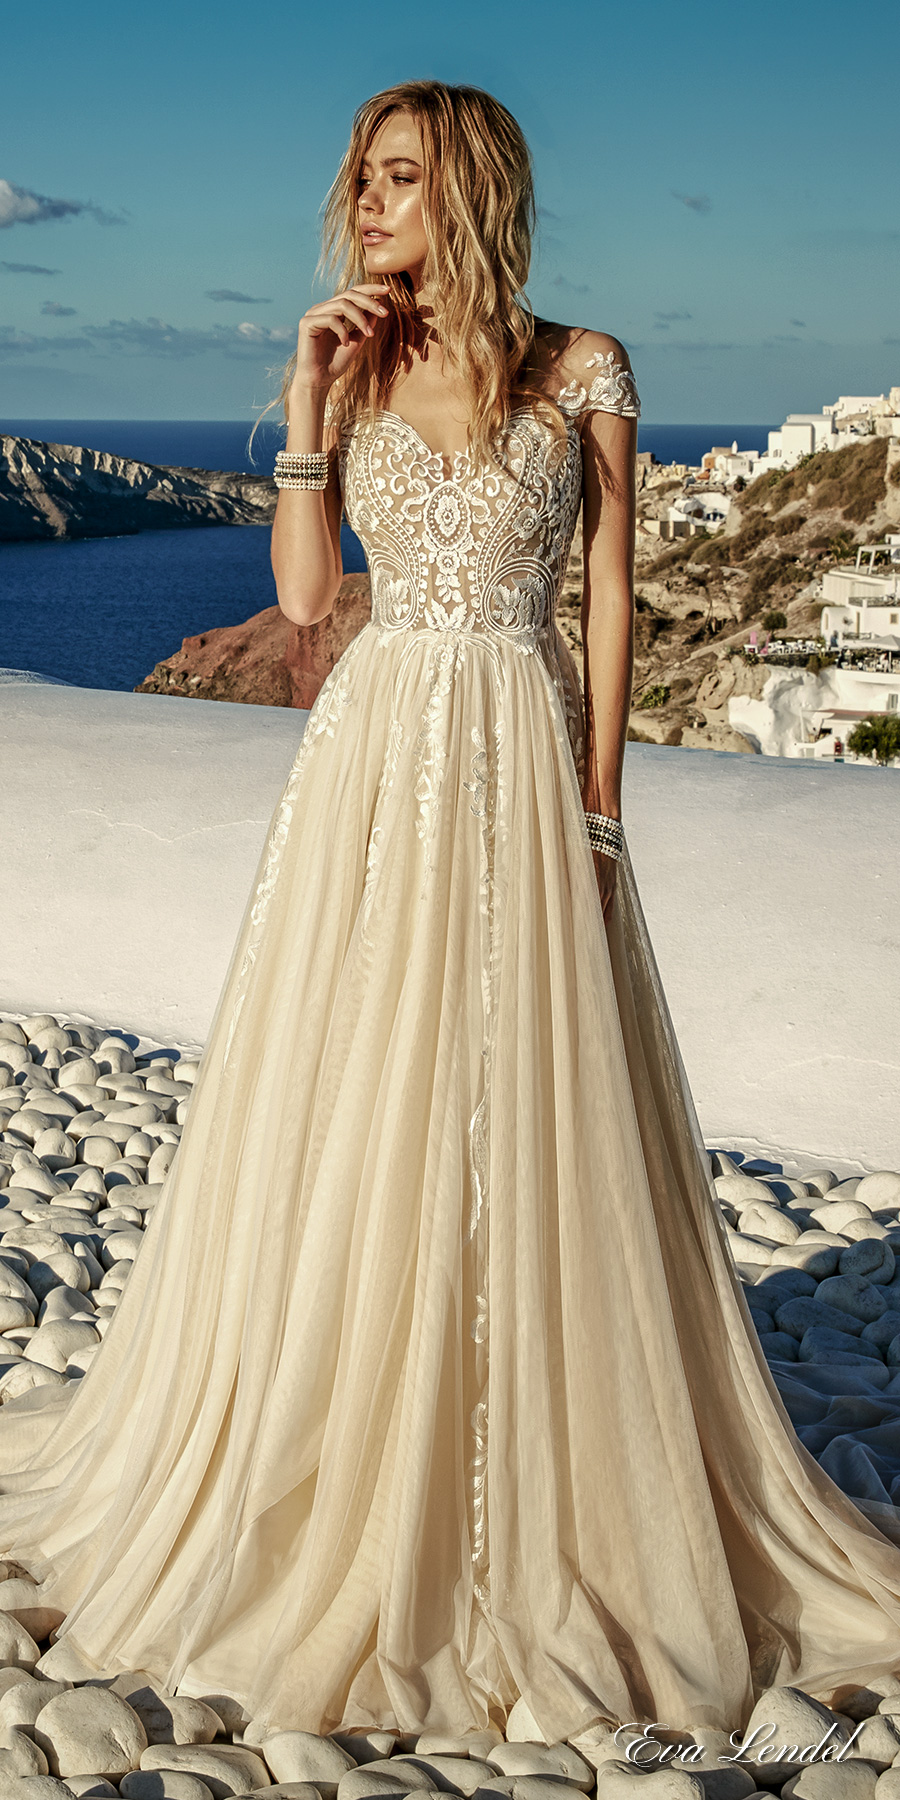 eva lendel 2017 bridal cap sleeves sweetheart neckline heavily embellished bodice romantic ivory color a line wedding dress lace back chapel train (cameron) mv